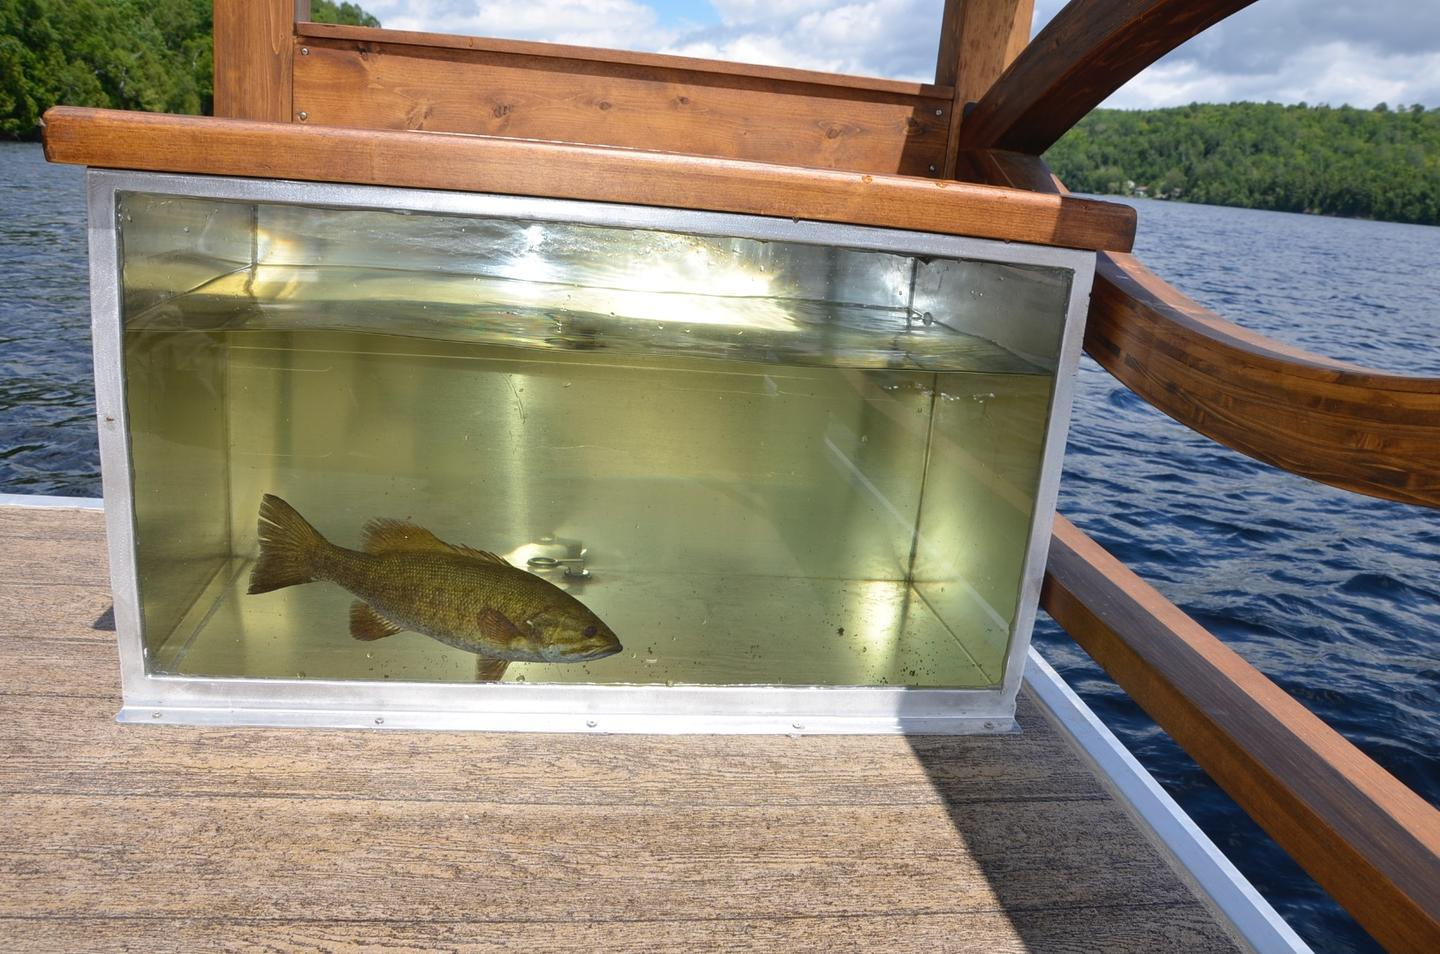 The Le Koroc model pictured is the fishing version and its deck area is equipped with a fish tank to store the day's catch